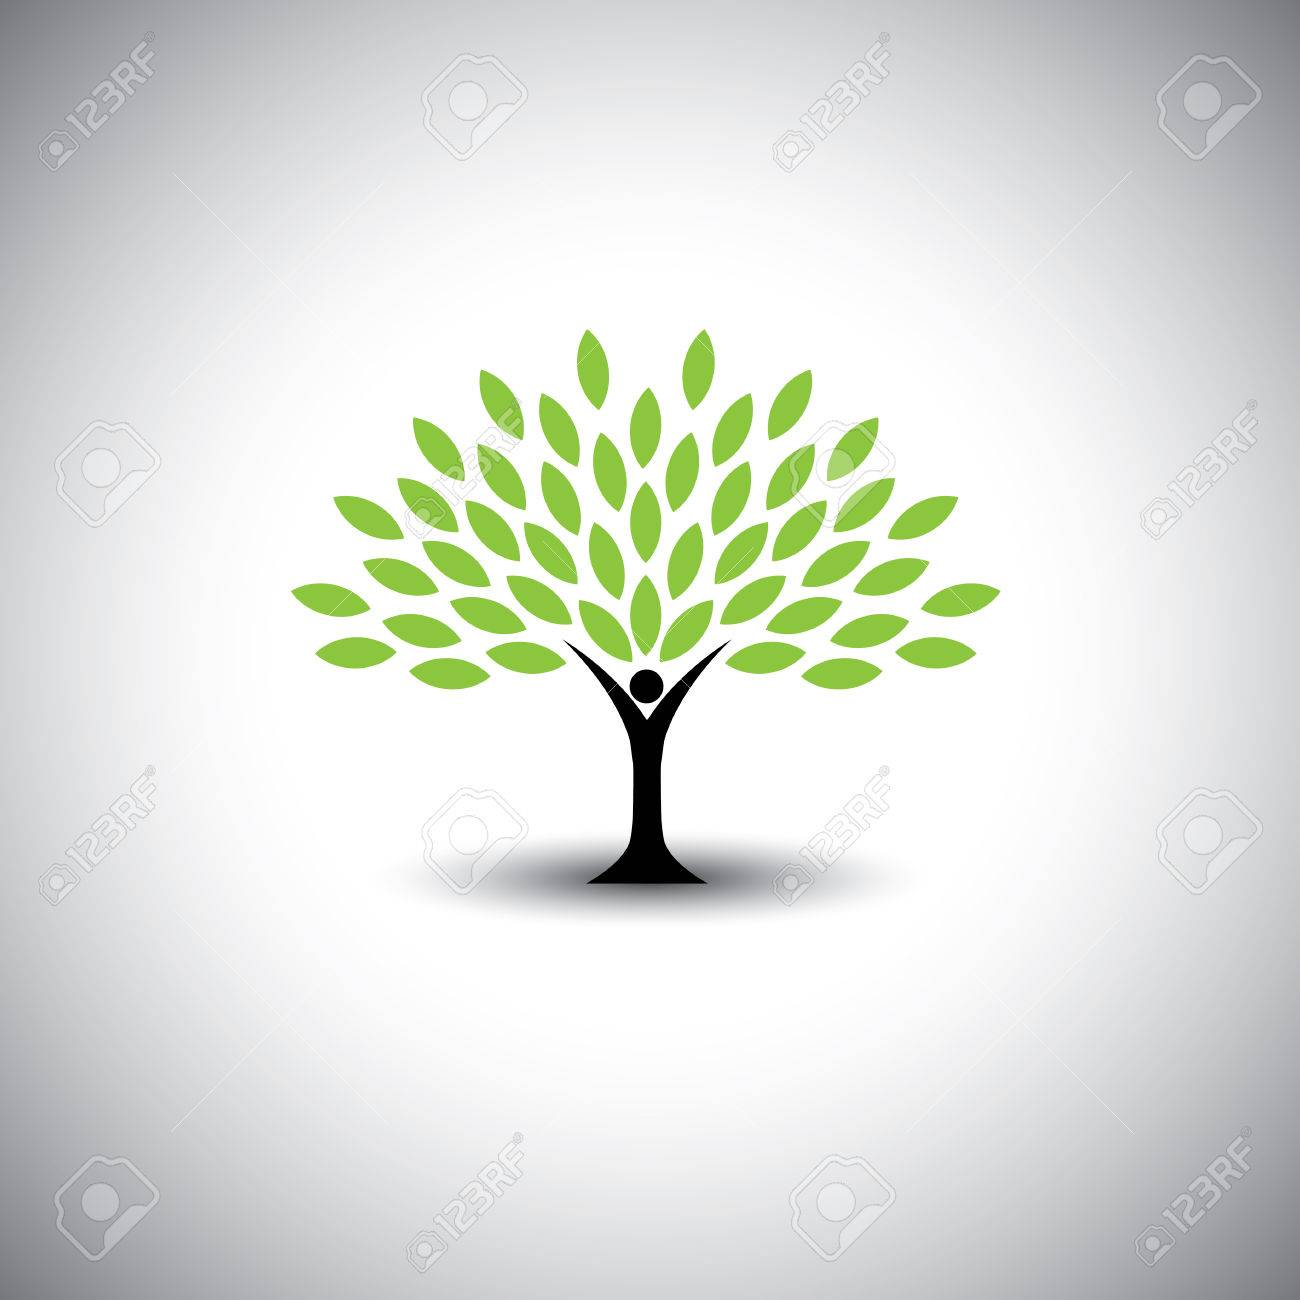 people embracing tree or nature - eco lifestyle concept vector. This graphic also represents harmony, nature conservation, sustainable development, natural balance, development, healthy growth - 36132317